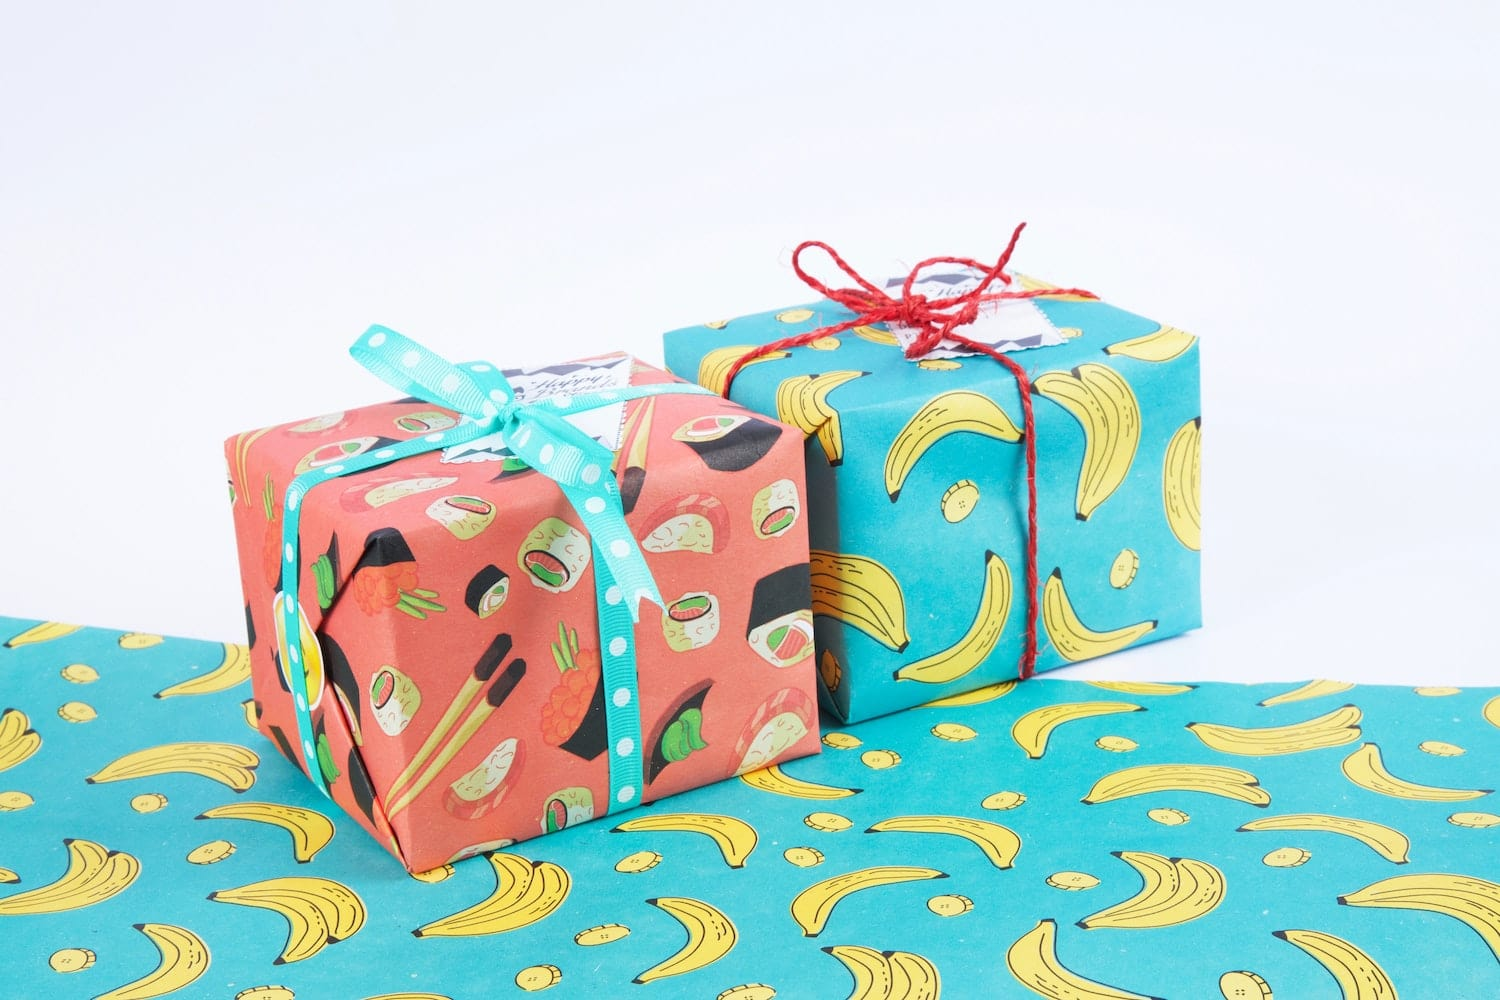 Birthday presents and wrapping paper